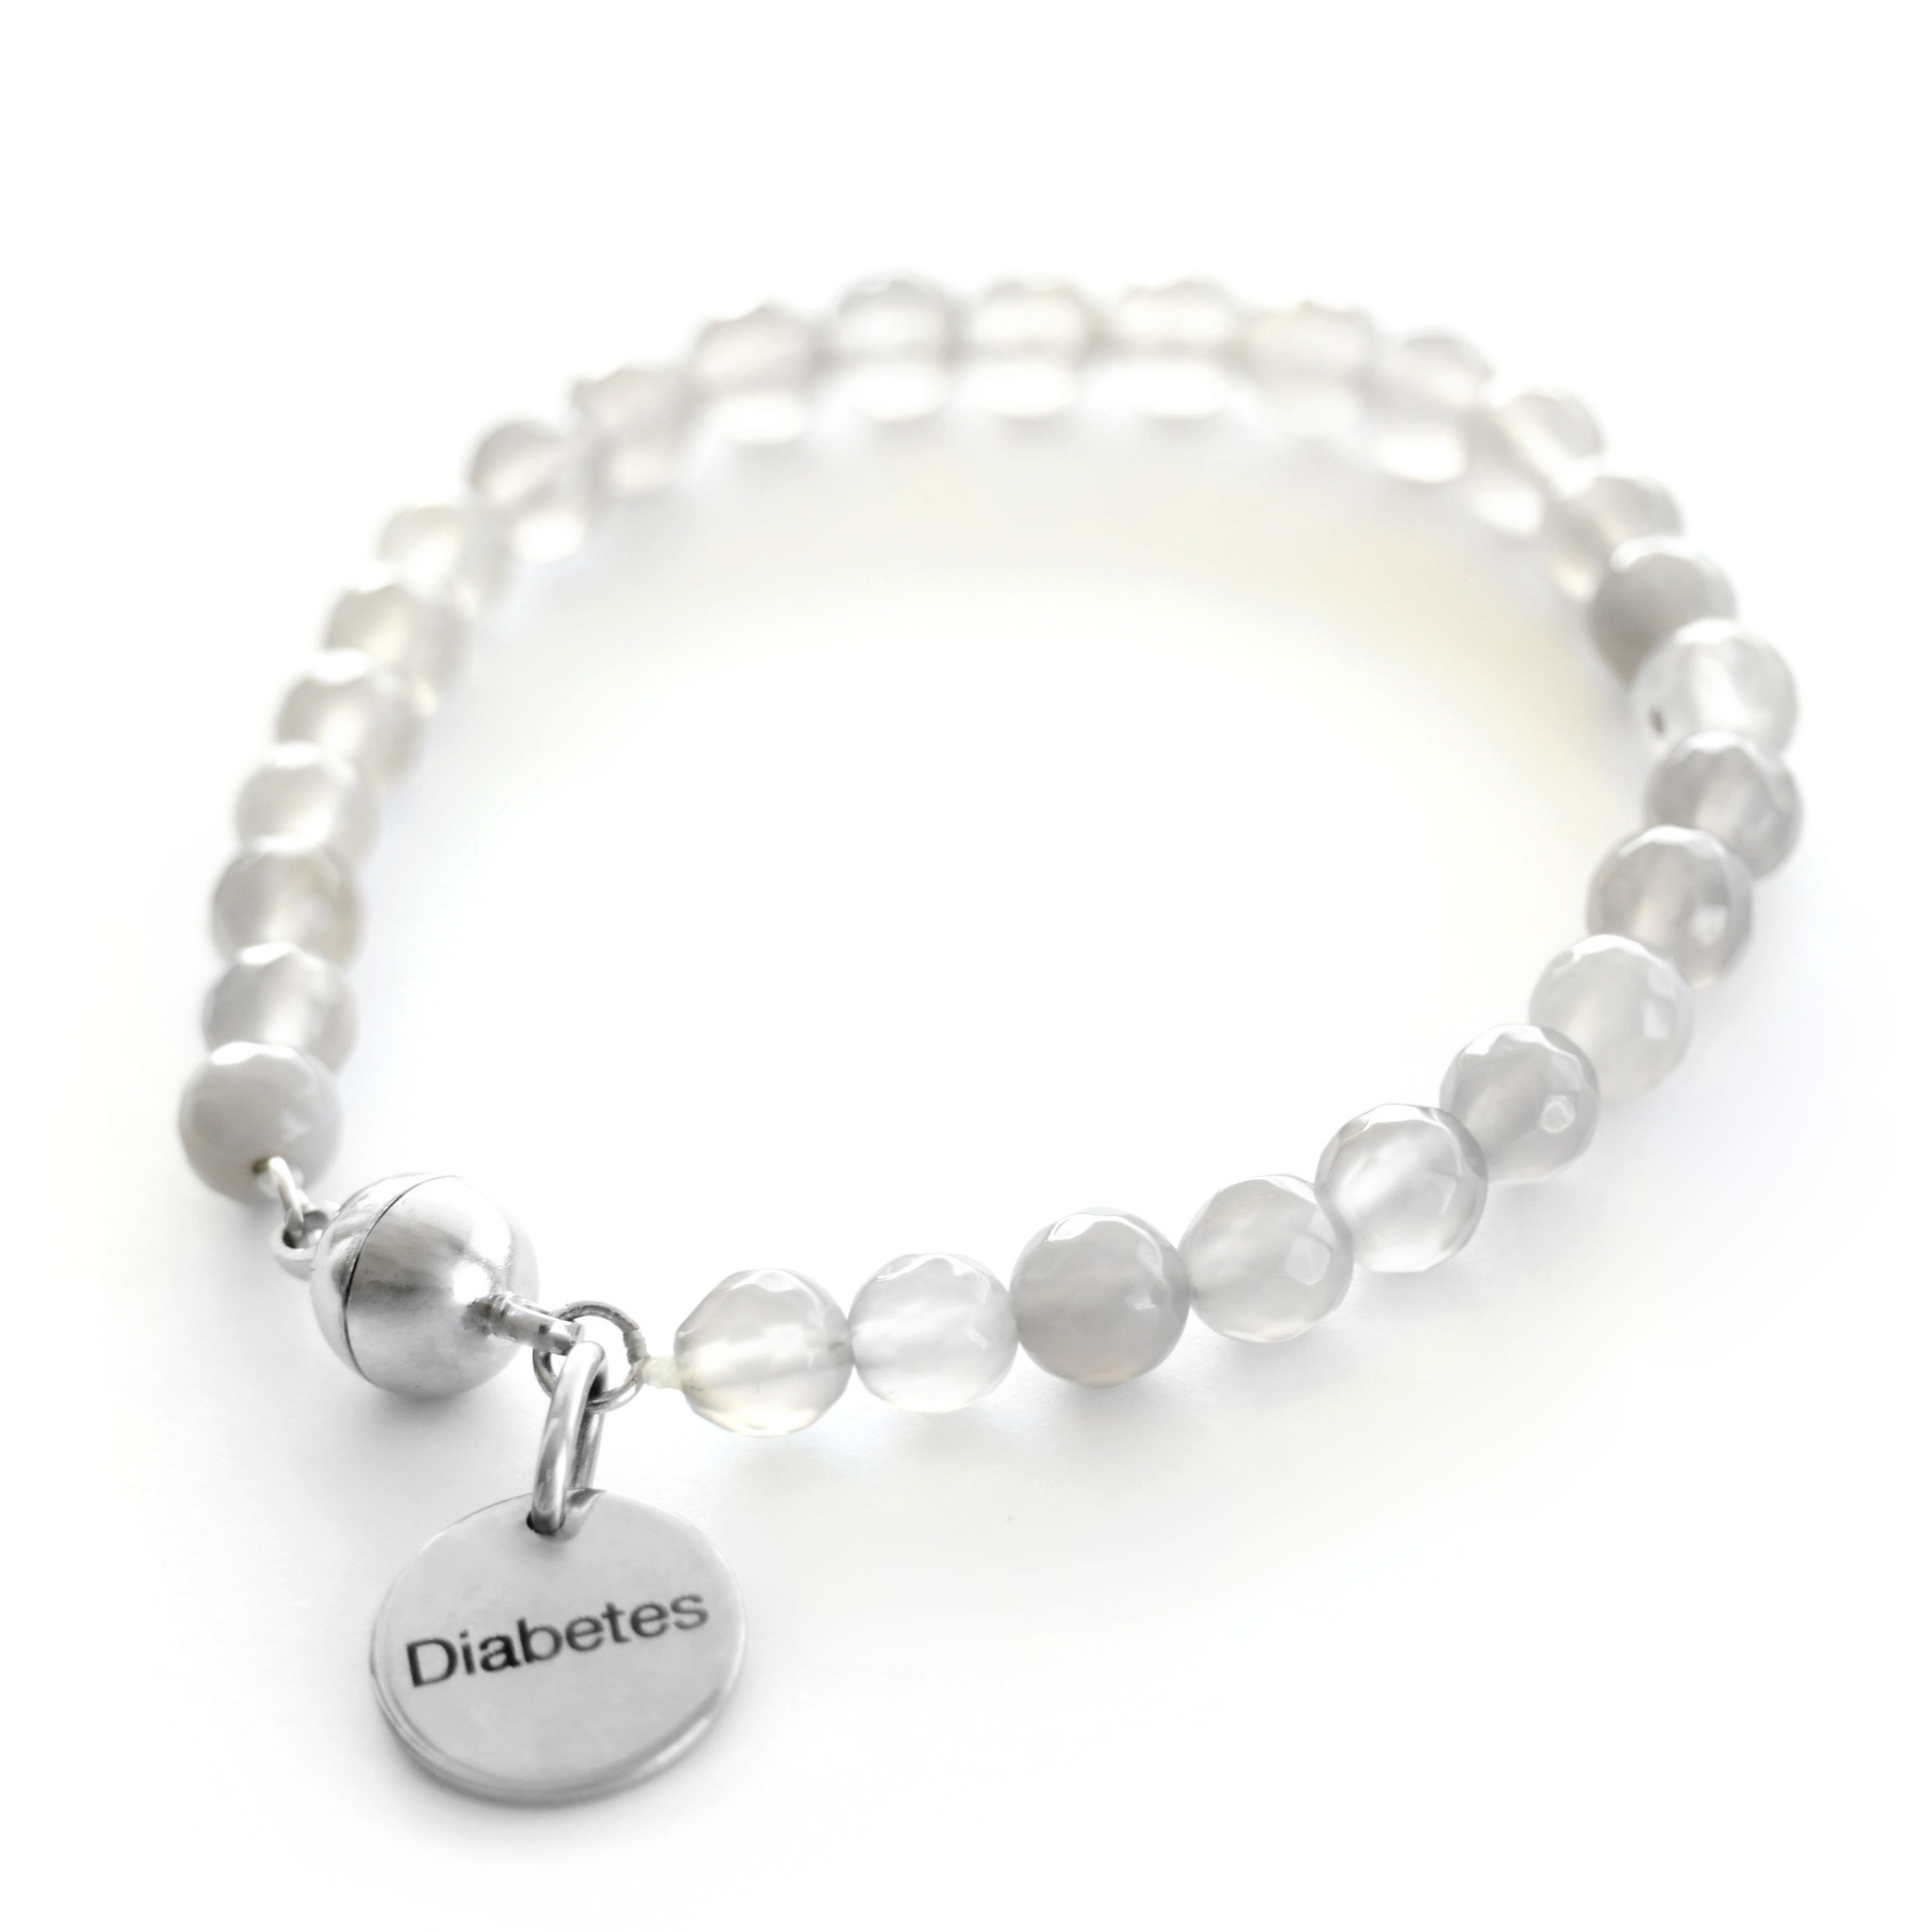 Diabetes gemstone bracelet - Stone-1